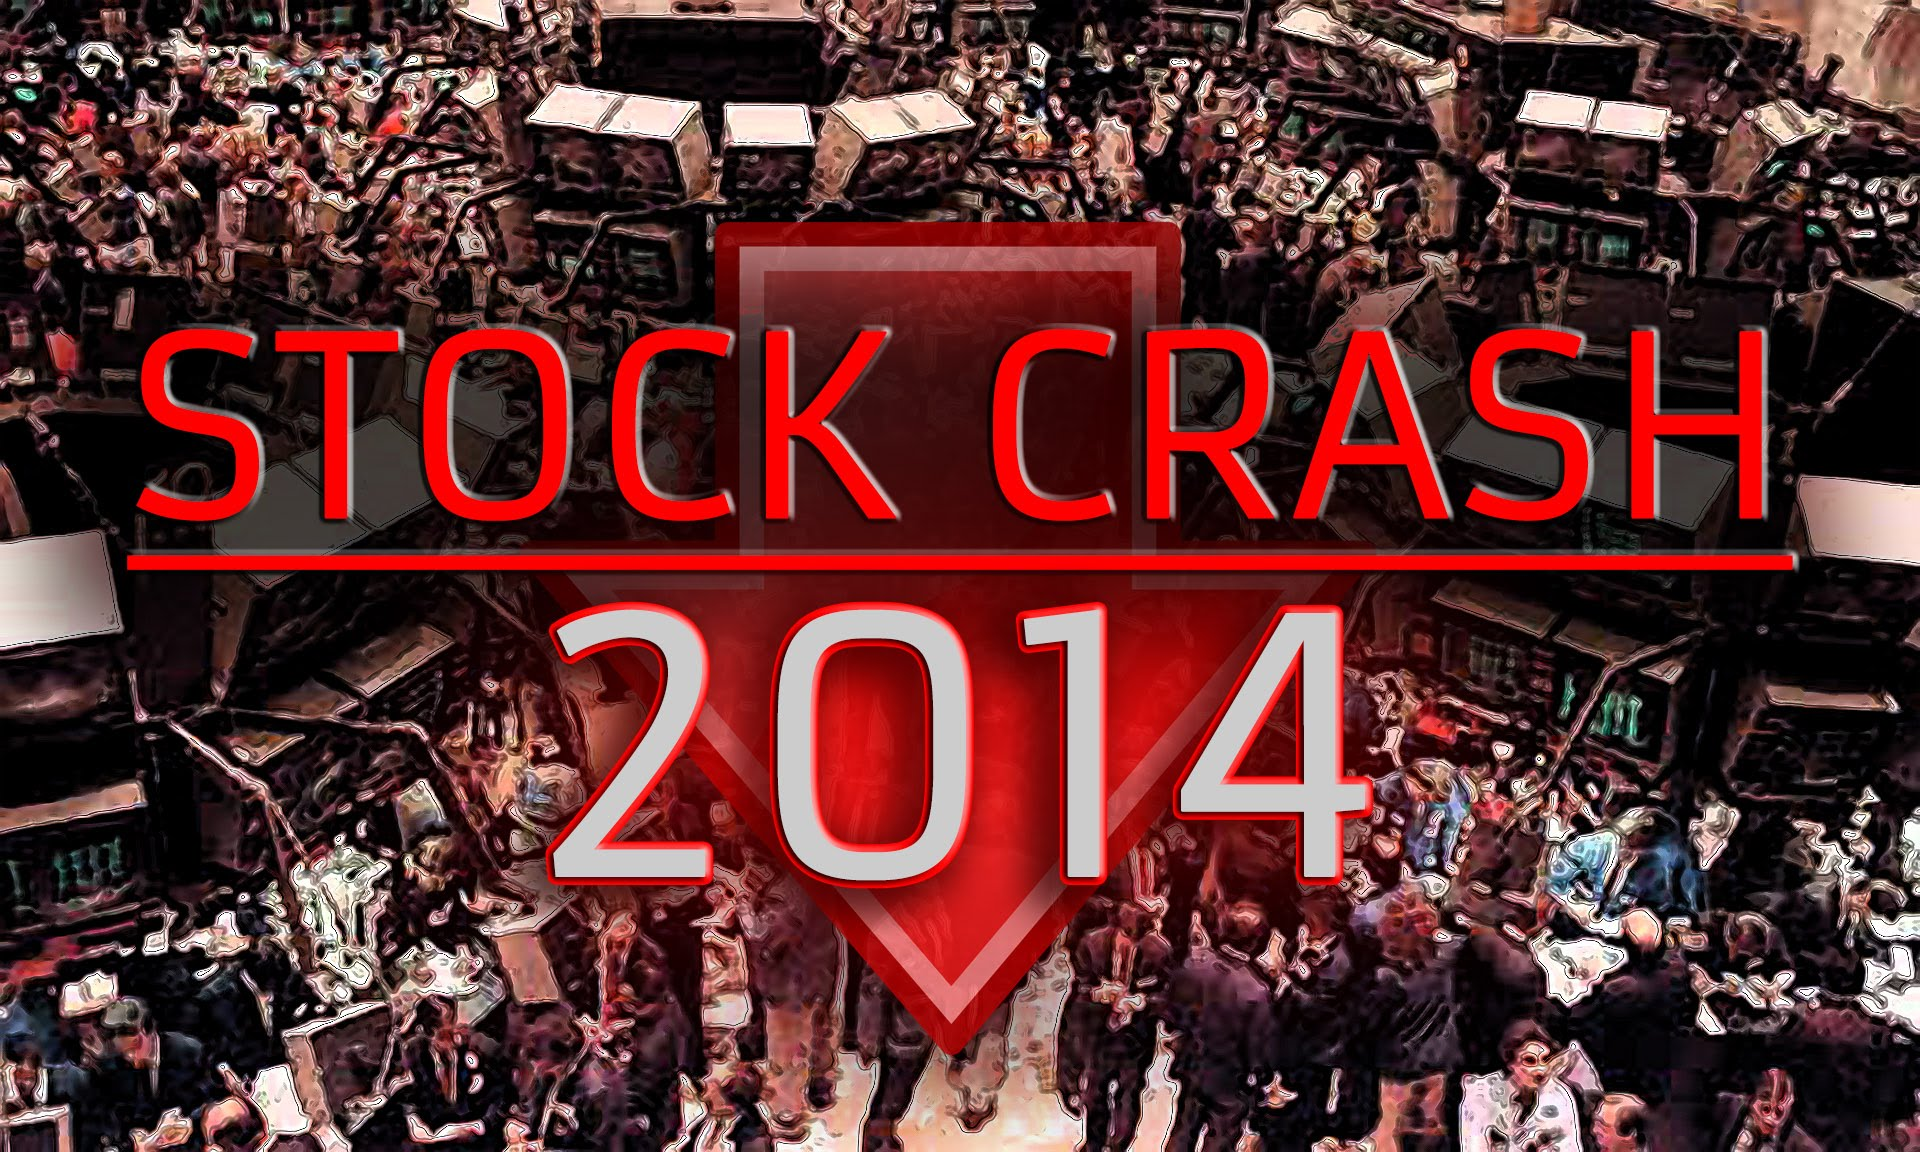 STOCK CRASH: Why the Bloodbath on Wall Street?